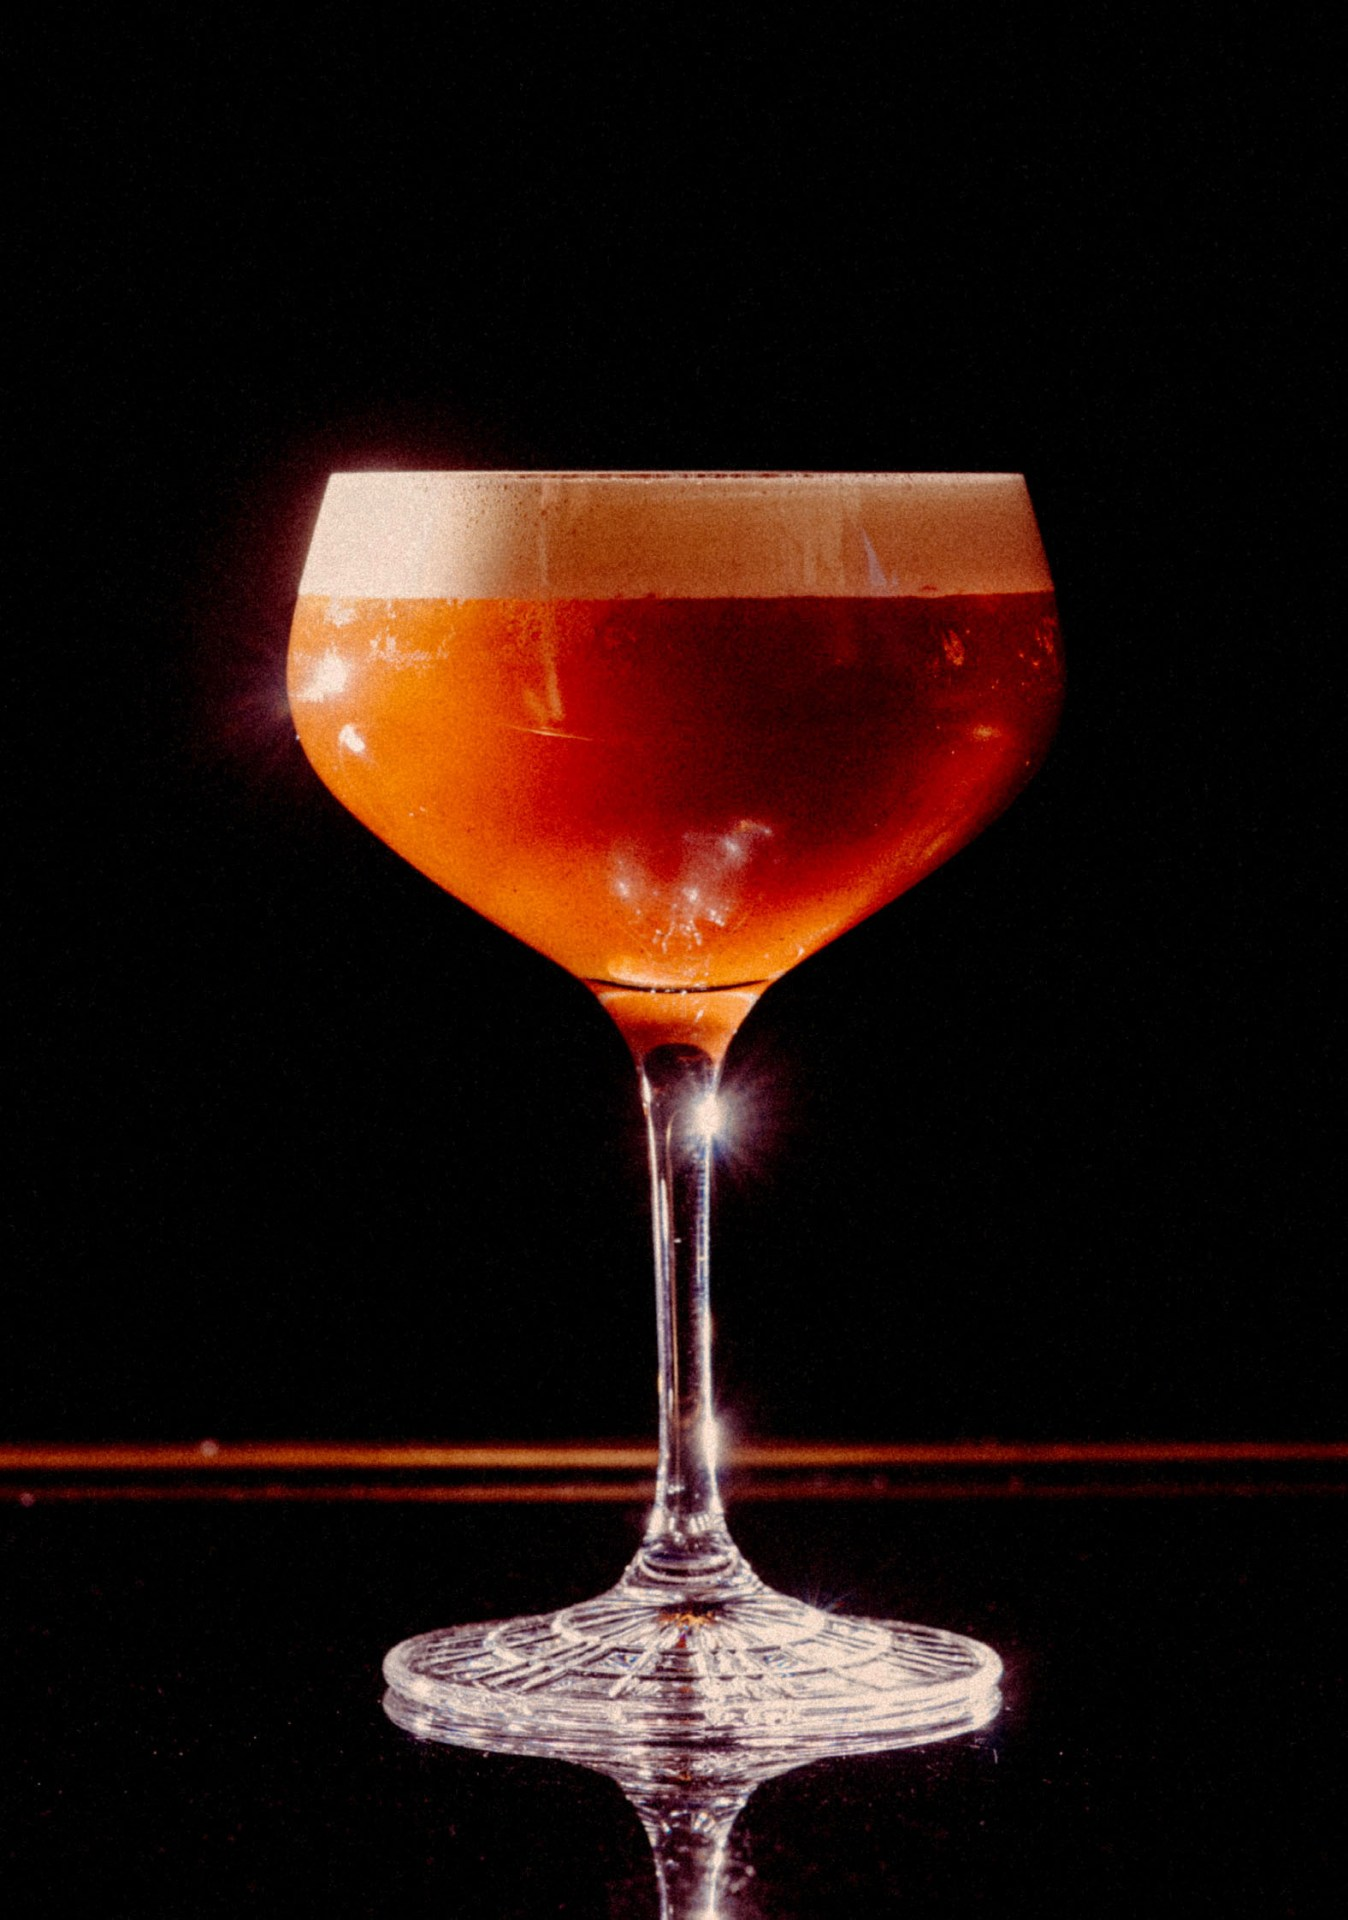 Recipe: 4cl Russian Standard Vodka 3cl Kahlúa 4cl Lavazza Ristretto 0.5cl White Chocolate Syrup Coffee Beans